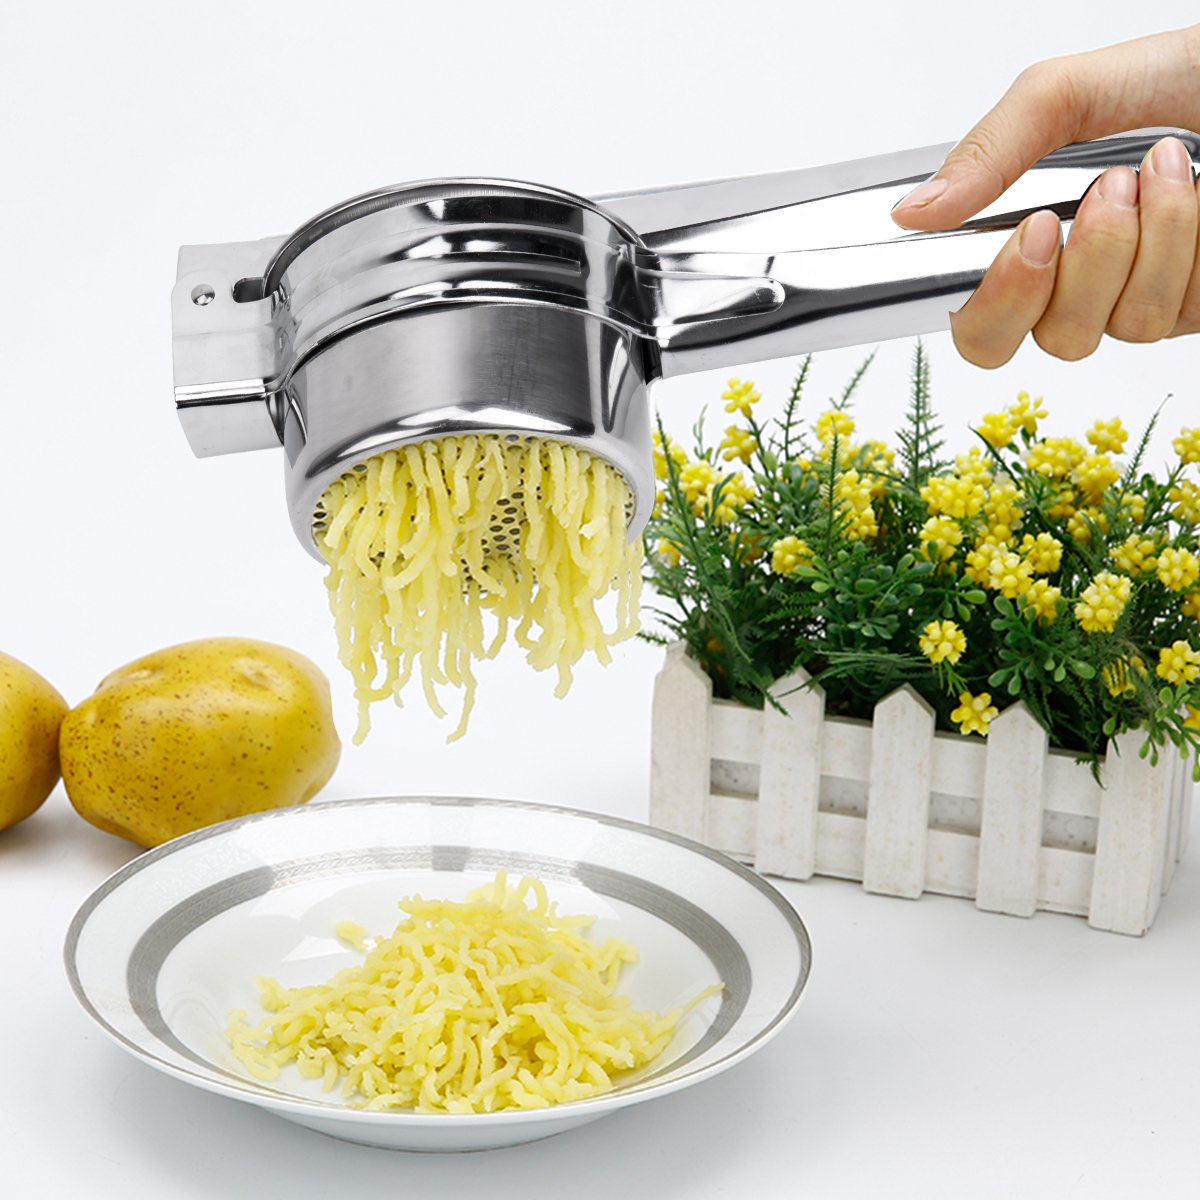 BeautyKitchen Stainless Steel Potato Ricer with 3 Interchangeable Disks by BeautyKitchen (Image #5)